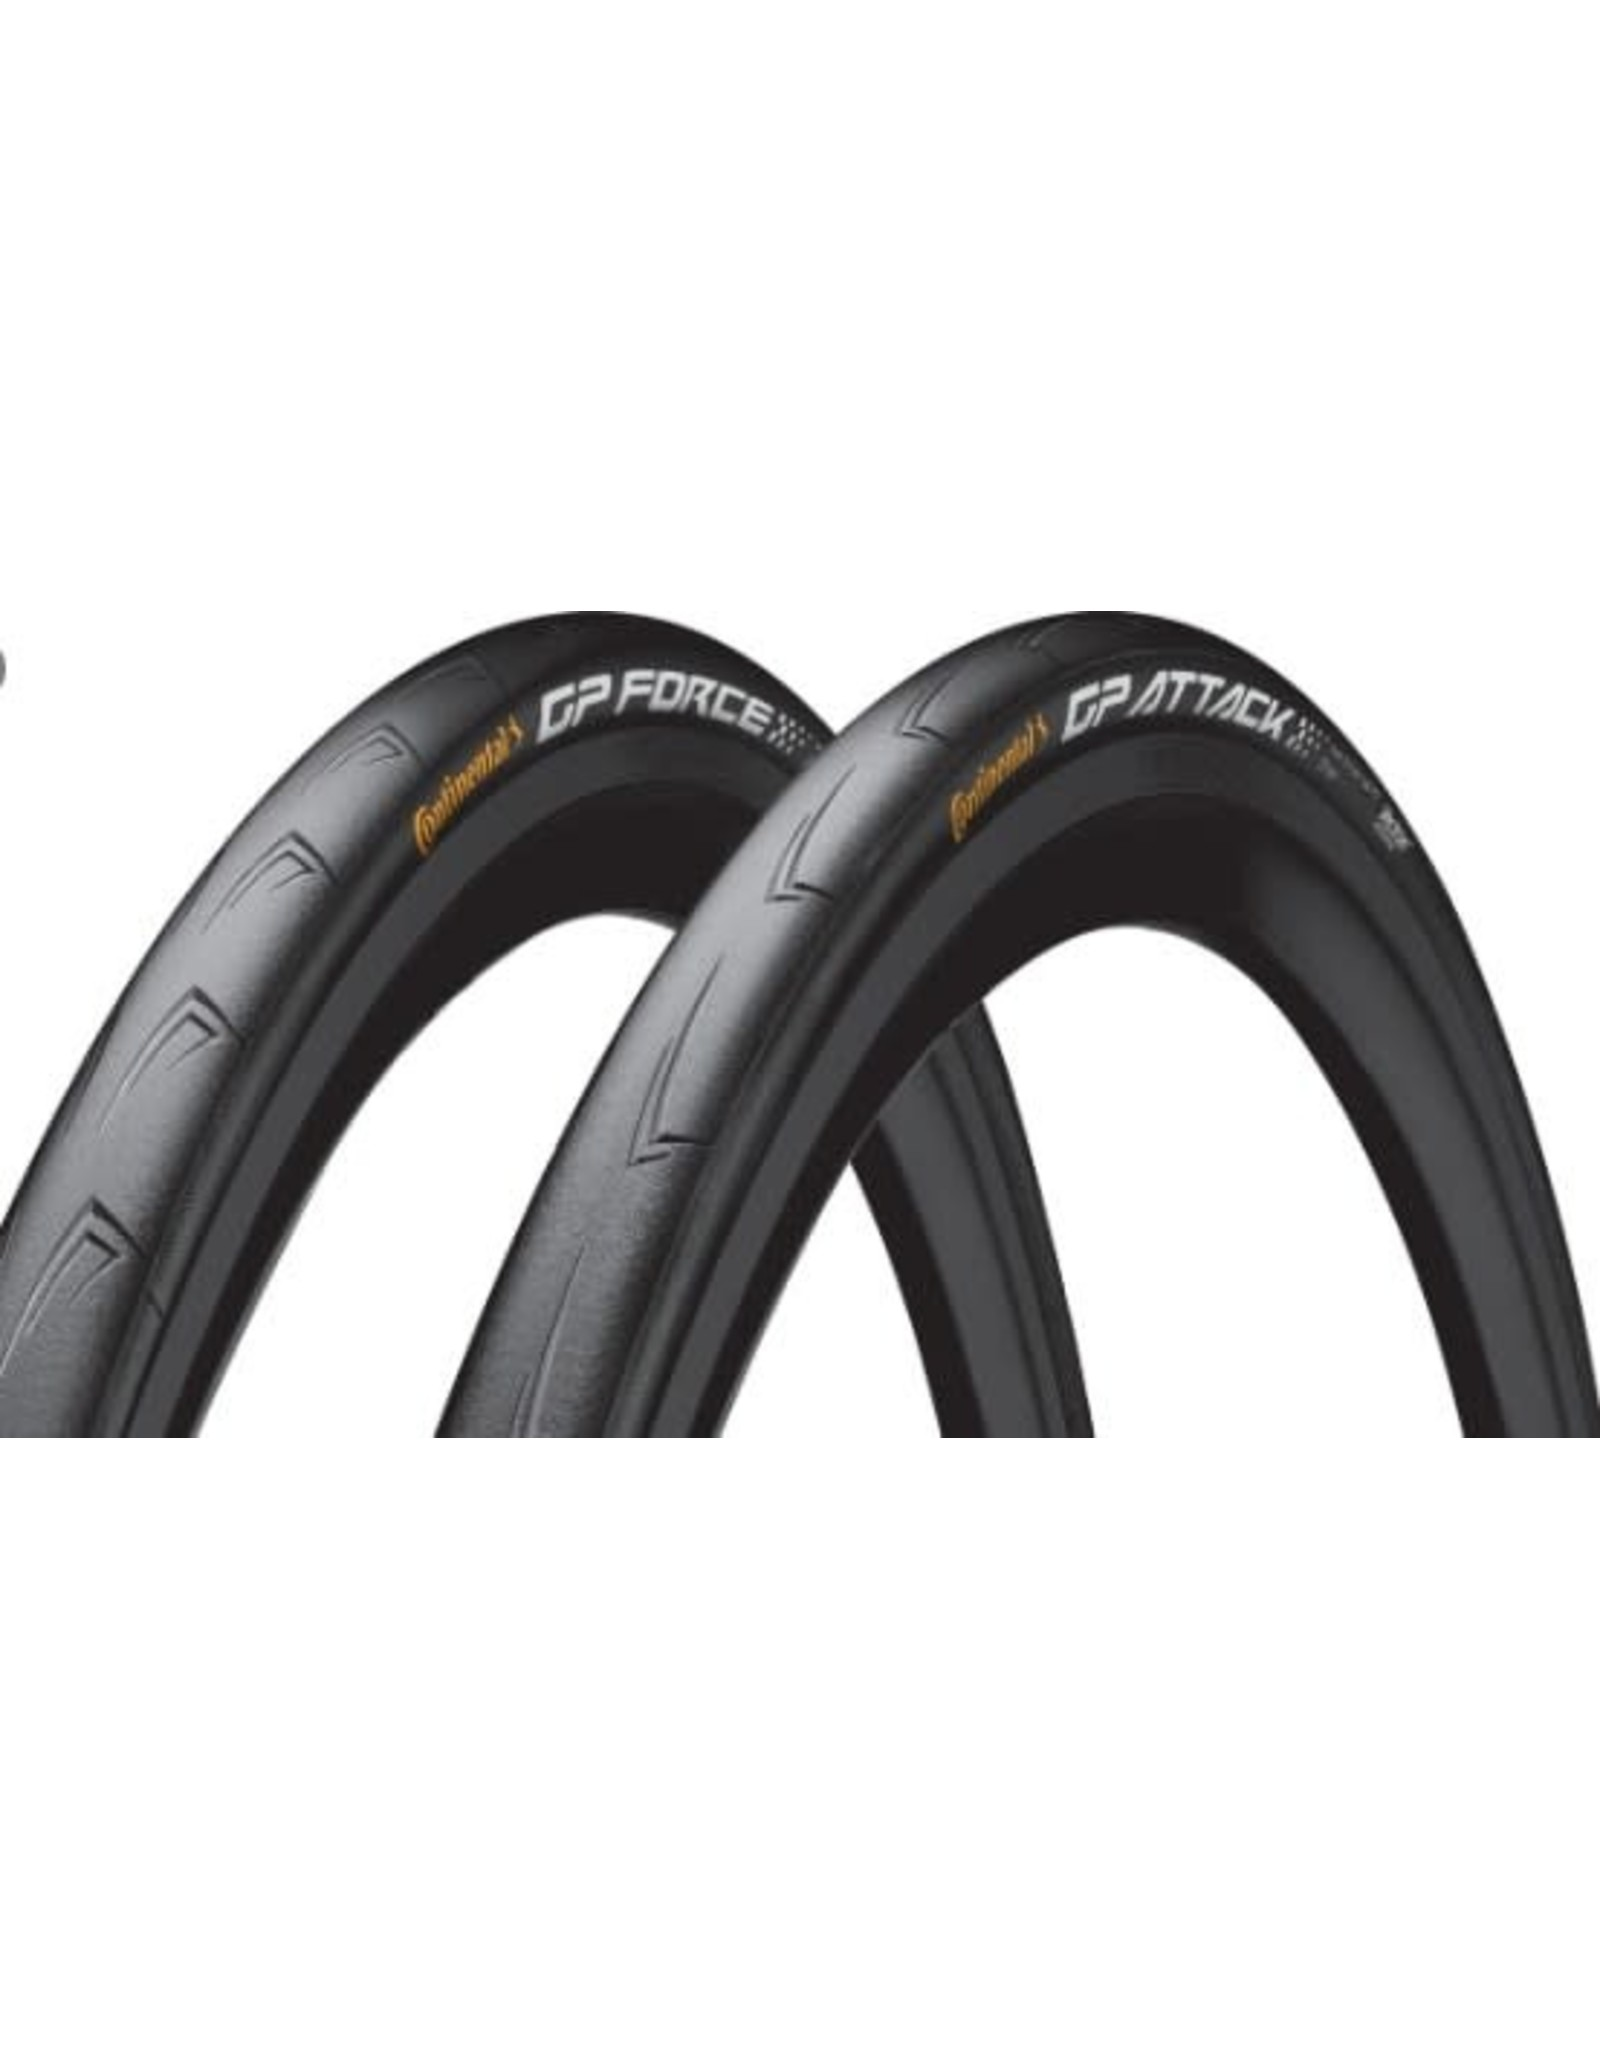 Continental Tires Conti GP Attack/Force 700x22/24 (pair)